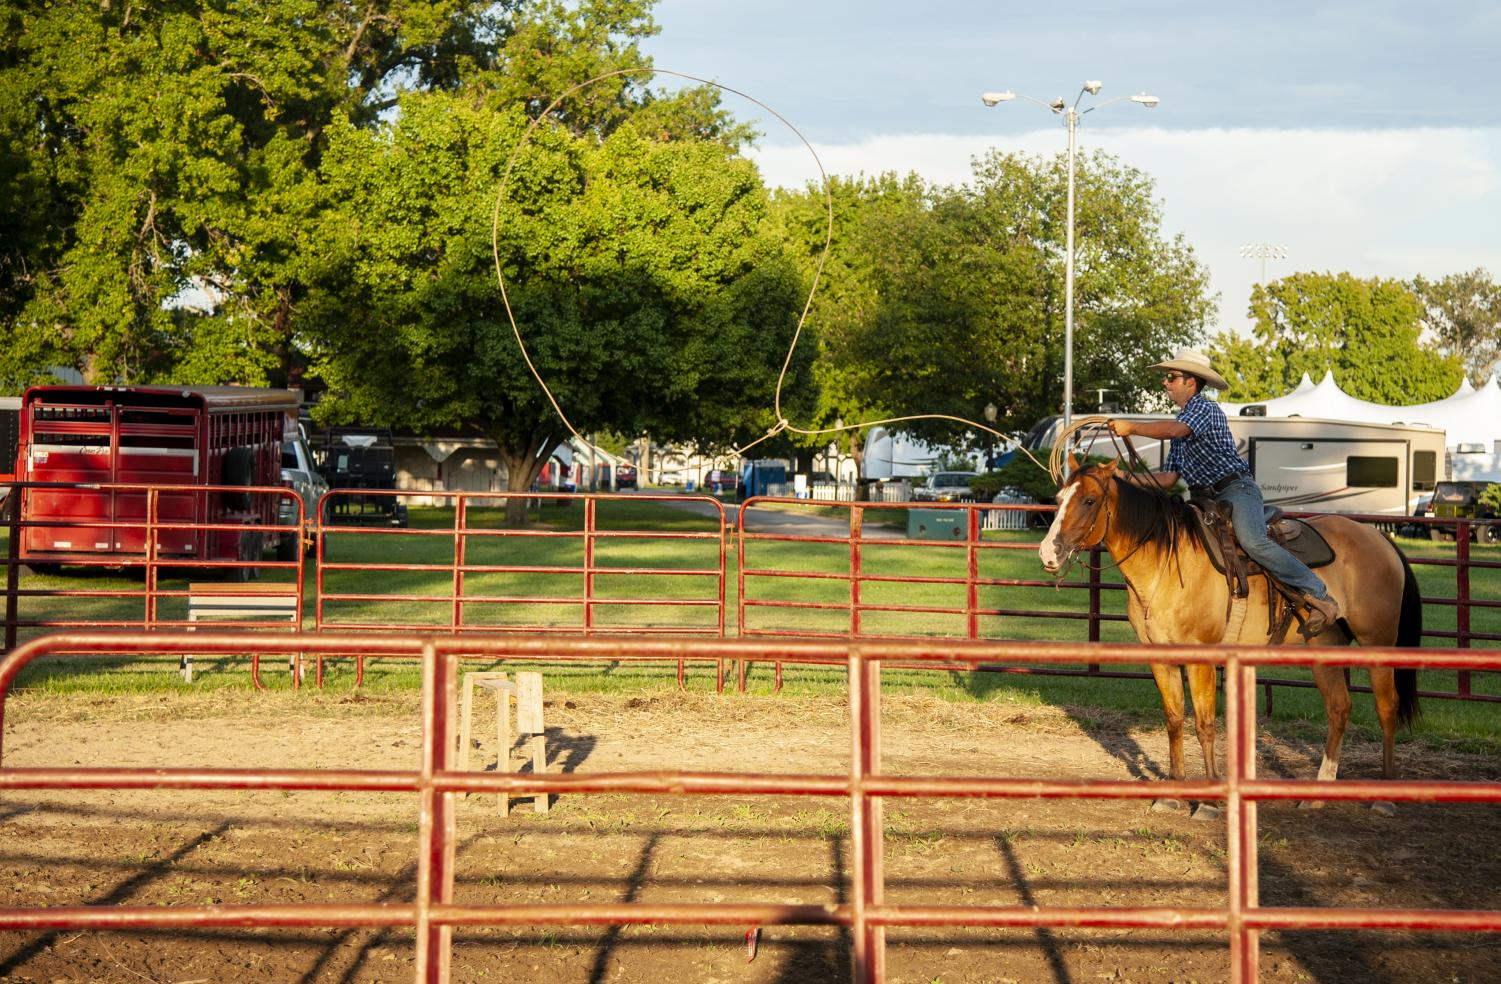 Jacob+Schwarm%2C+28%2C+of+Marion+throws+his+lasso+around+a+practice+cattle%2C+Friday%2C+Aug.+31%2C+2018%2C+at+the+Du+Quoin+State+Fair.+%28Mary+Barnhart+%7C+%40MaryBarnhart%29